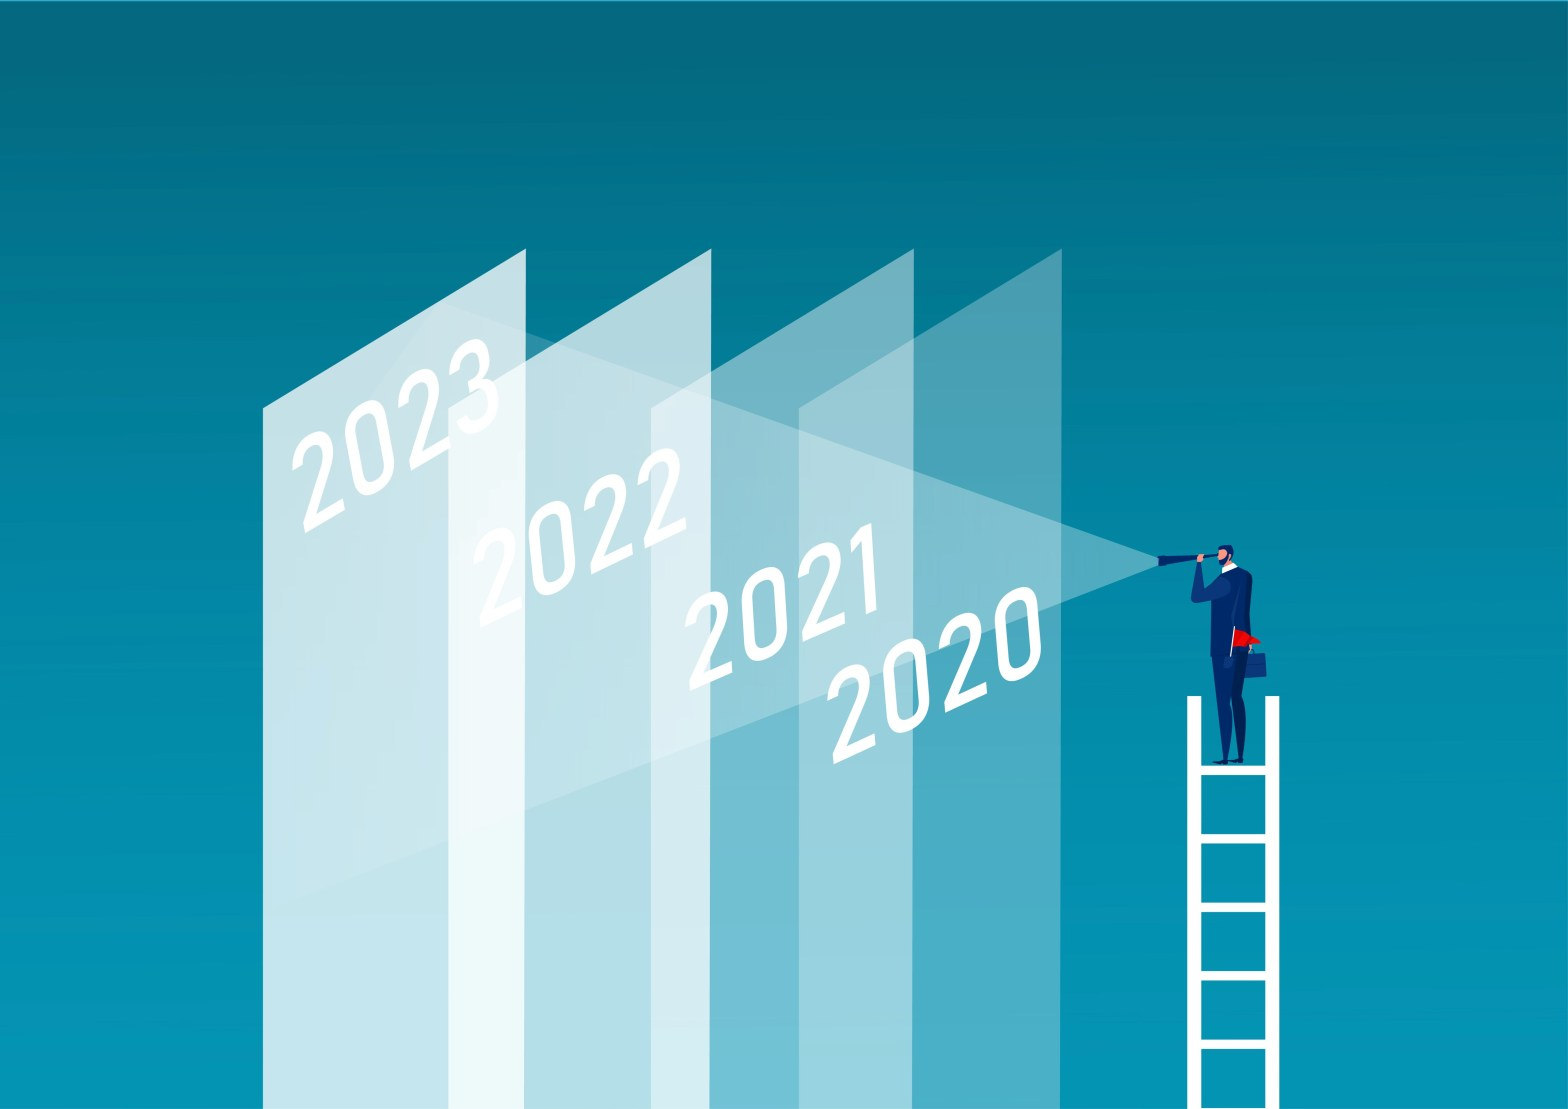 Graphic of a person in a business suit standing on top of a ladder and looking through a hand-held telescope. He's looking from the year number 2020 ahead to the year number 2023.